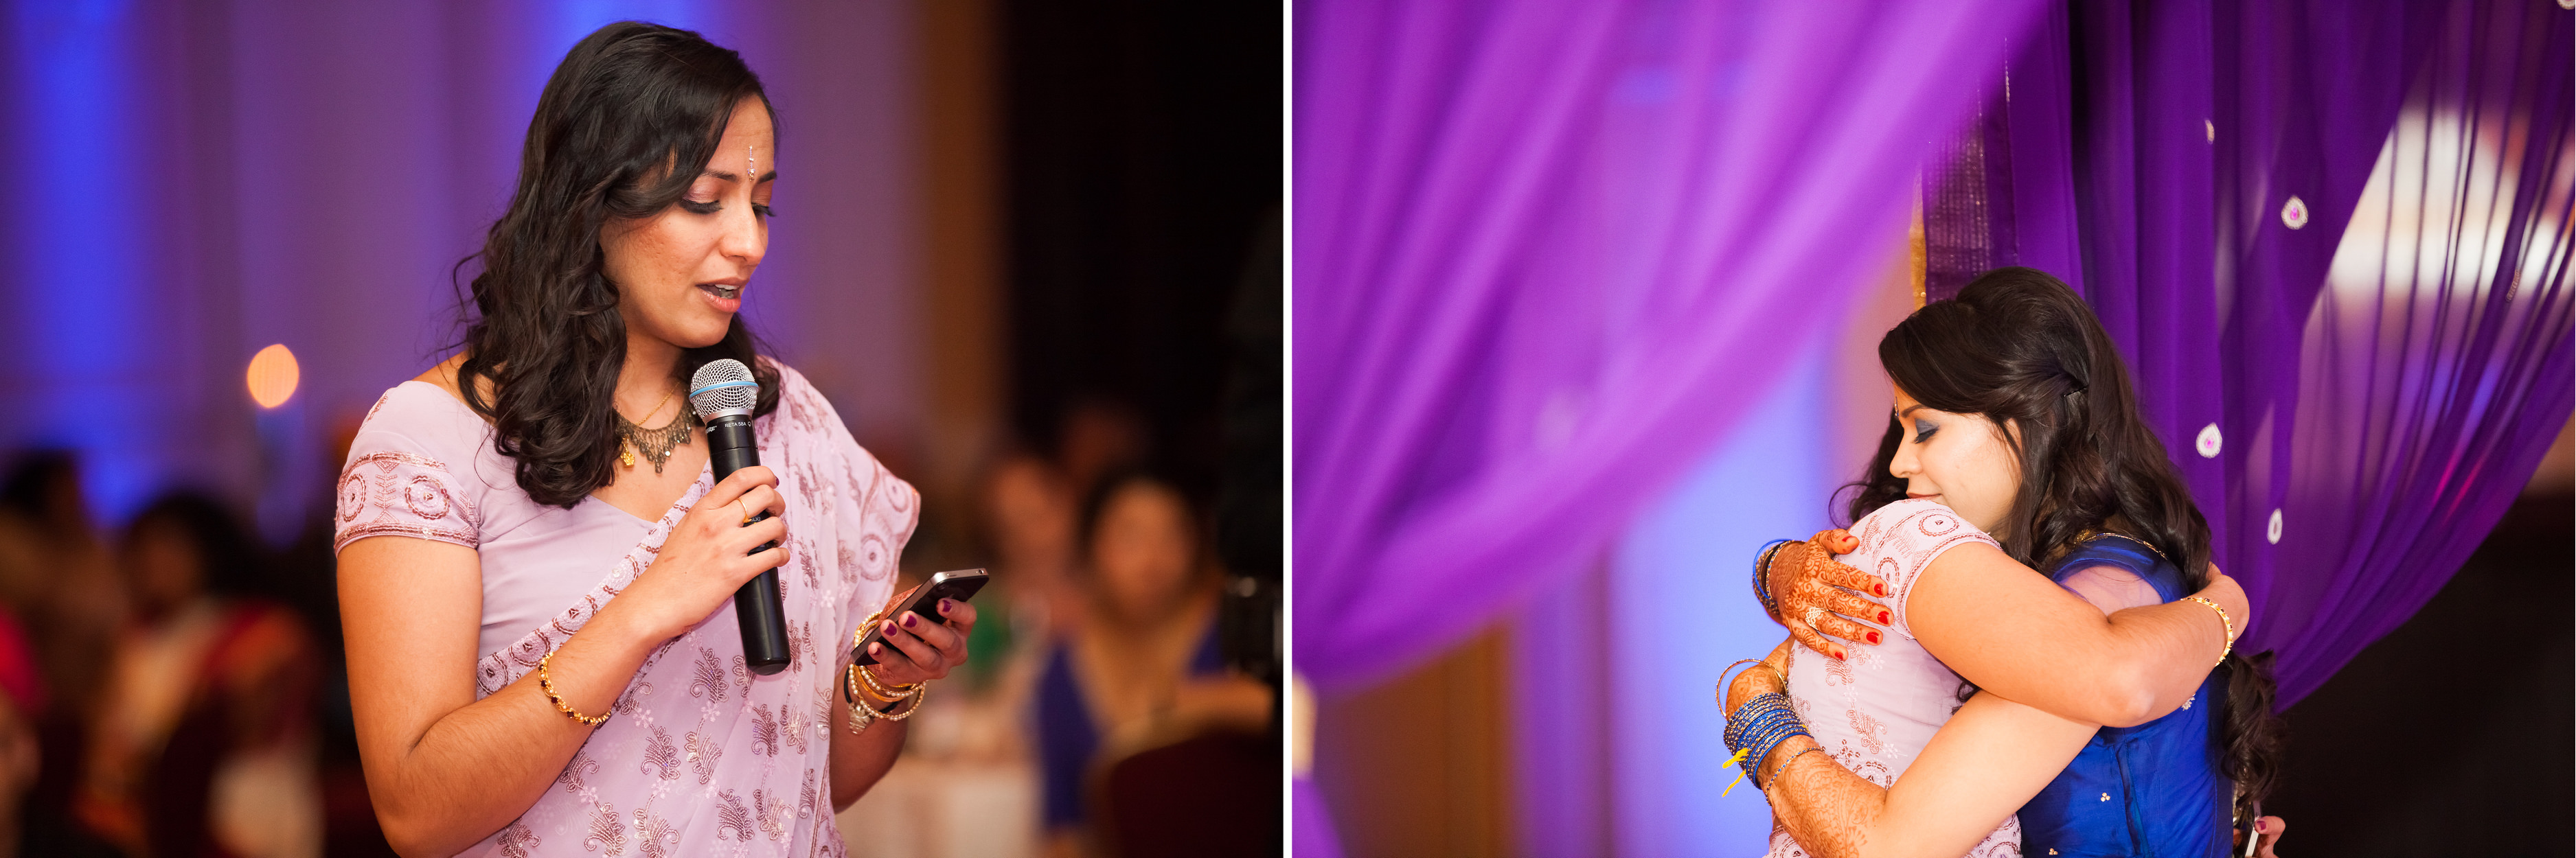 Emma_cleary_photography Indian Wedding28